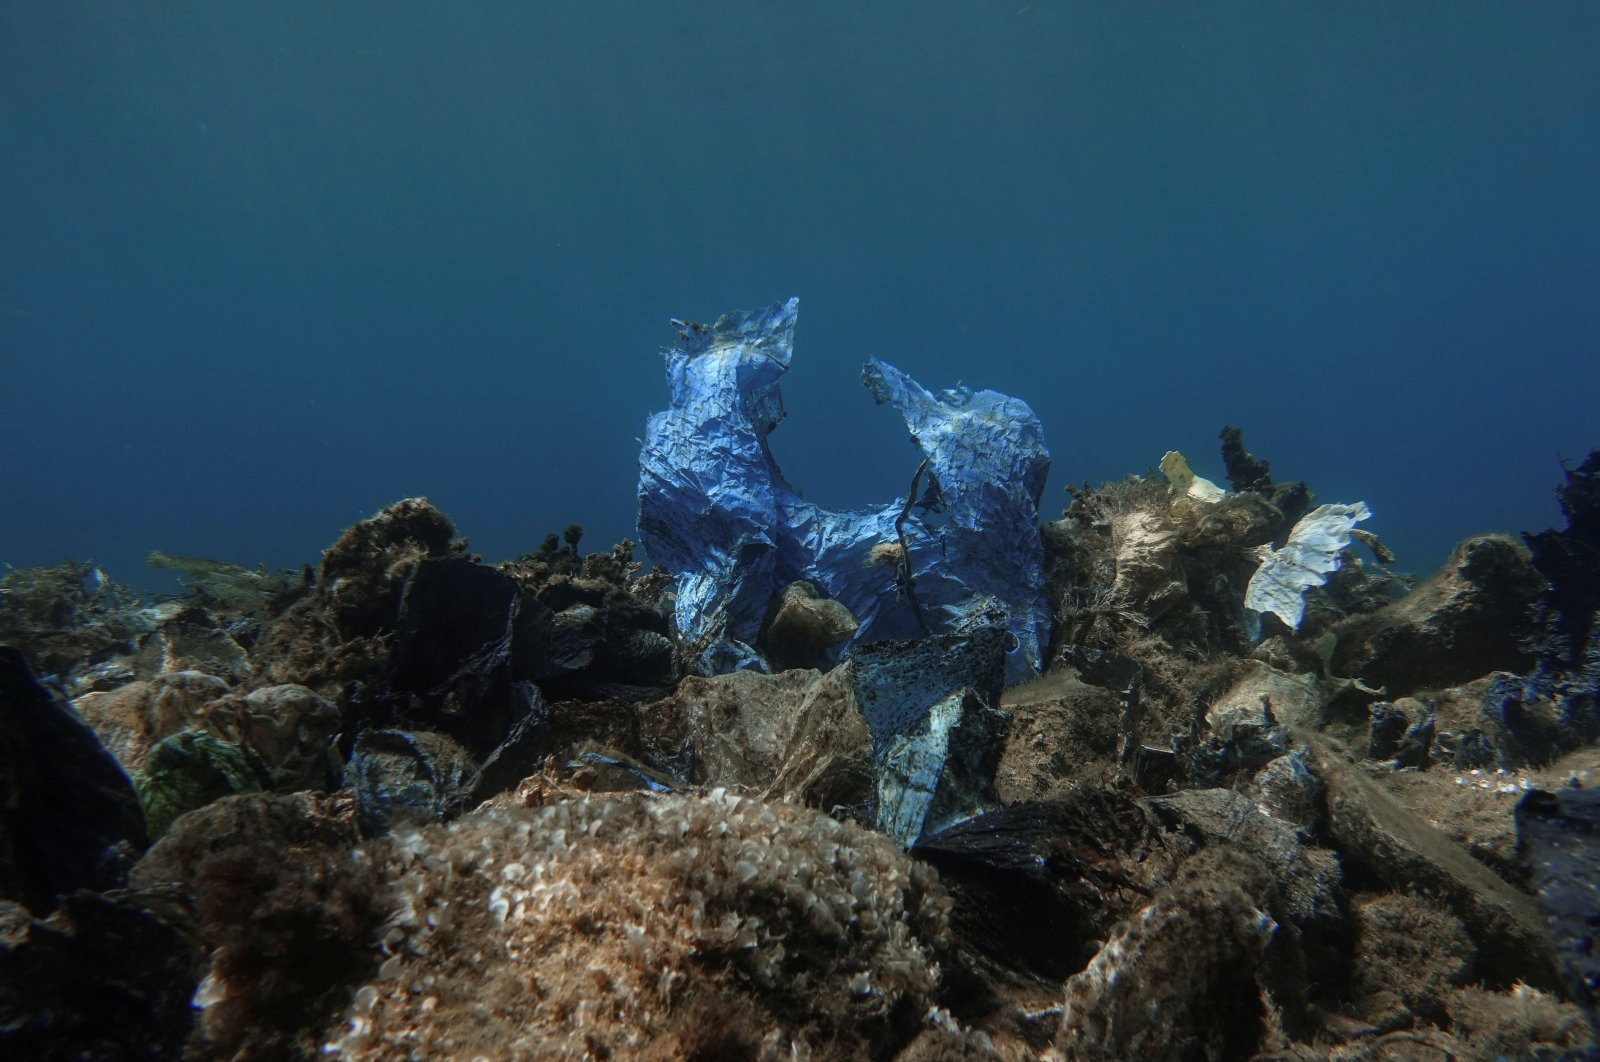 A plastic bag is seen at the bottom of the sea, off the island of Andros, Greece, July 20, 2019. (REUTERS Photo)